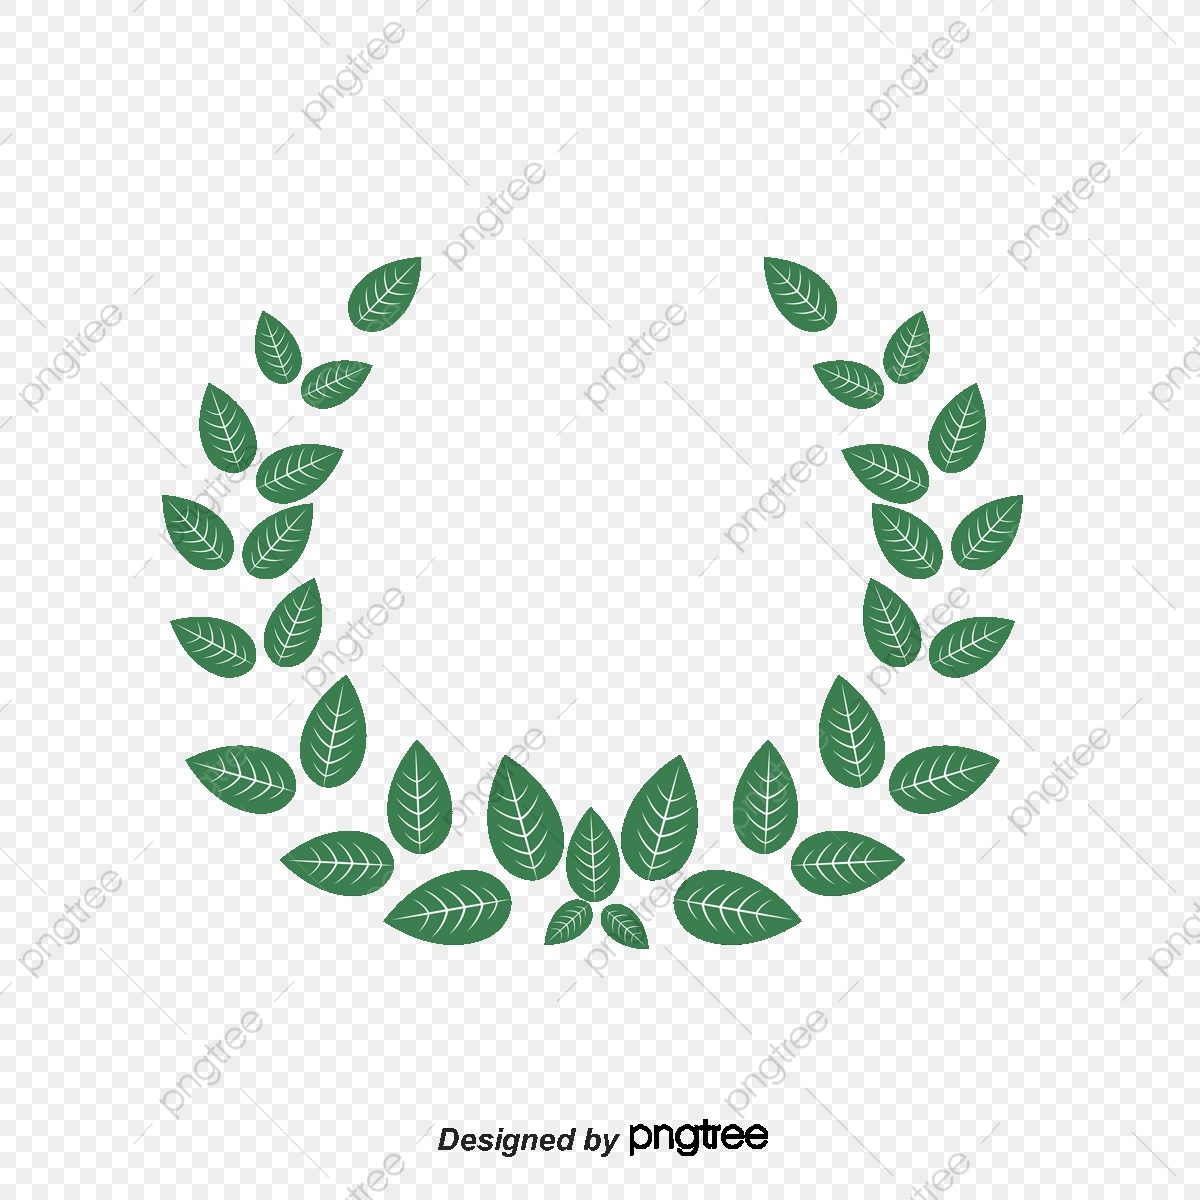 Green Leaves Border Green Vector Border Vector Green Leaves Png Transparent Clipart Image And Psd File For Free Download